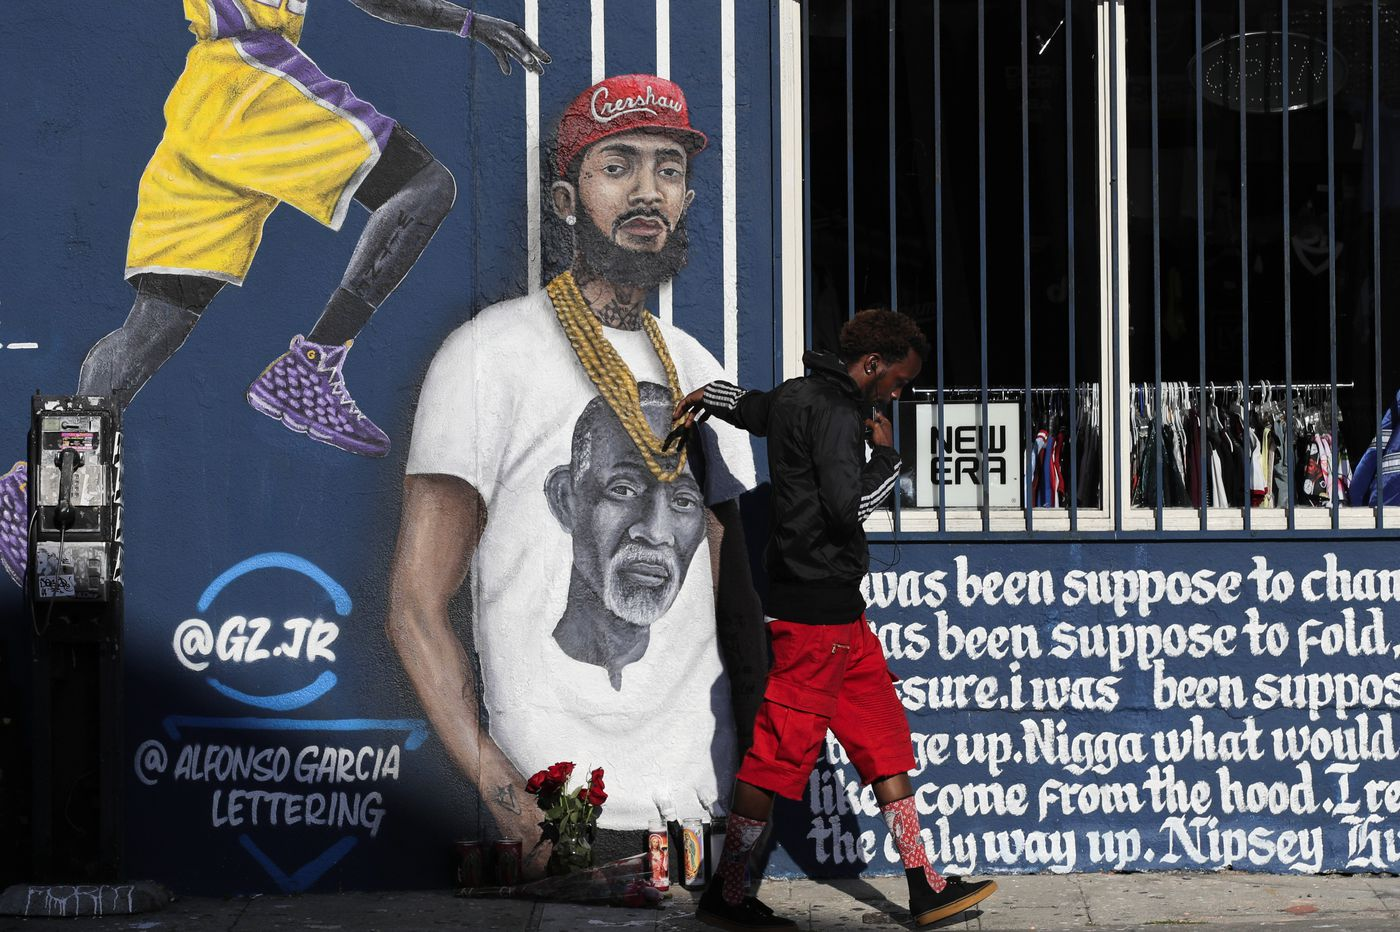 Tragic loss of Nipsey Hussle is a reminder of gun violence's everyday horrors | Opinion